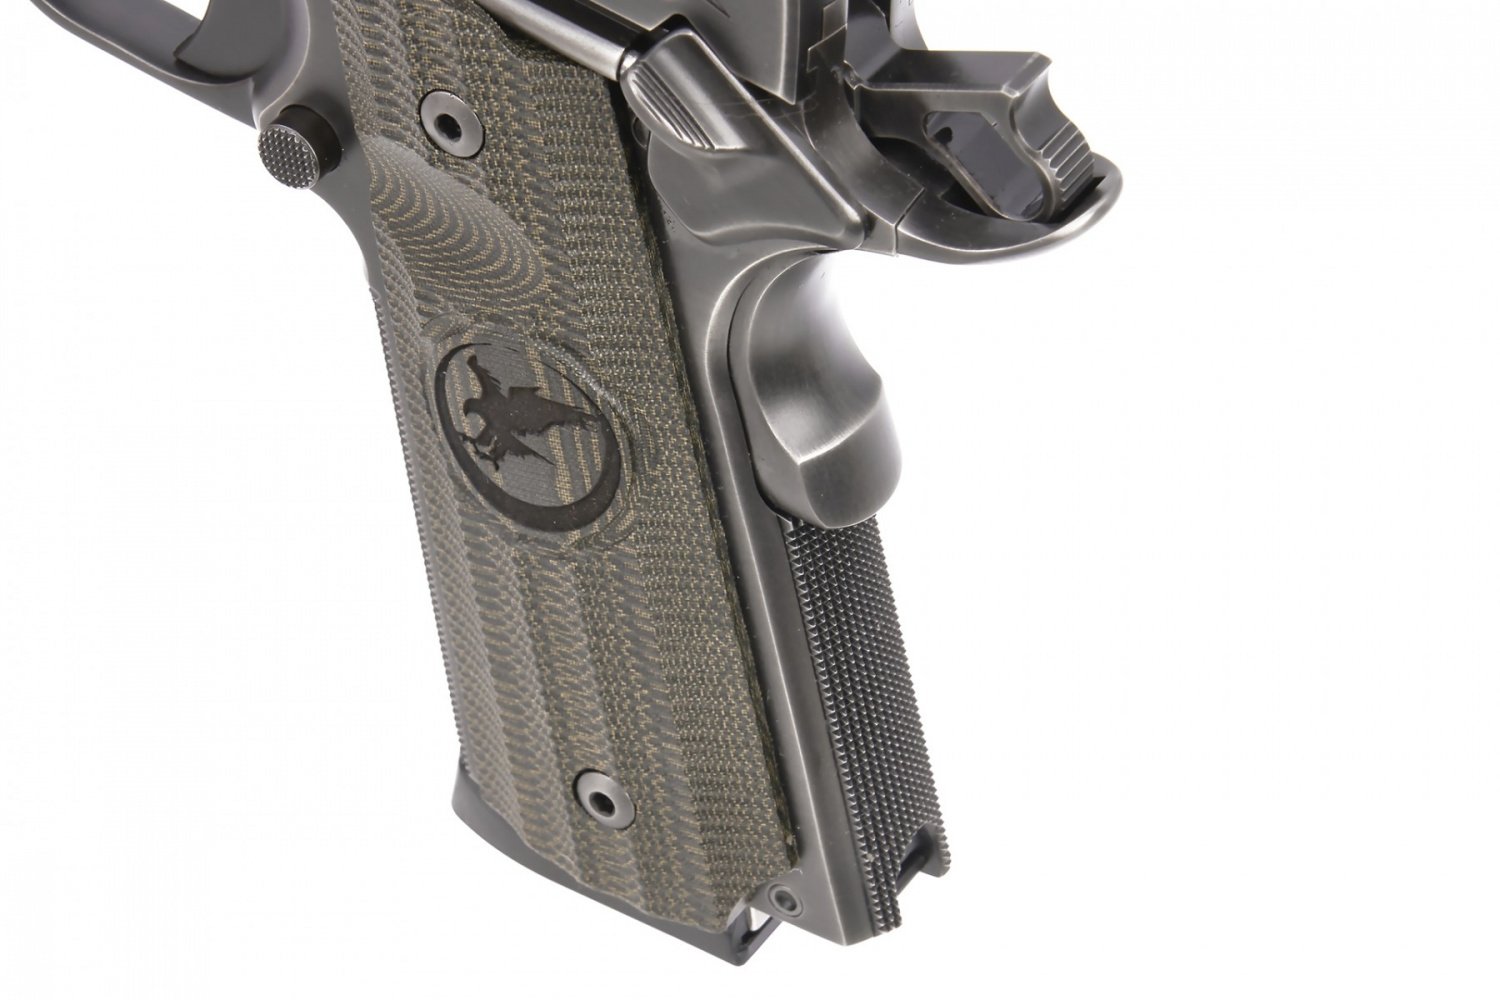 The Thunder Ranch Combat Special by Nighthawk Custom